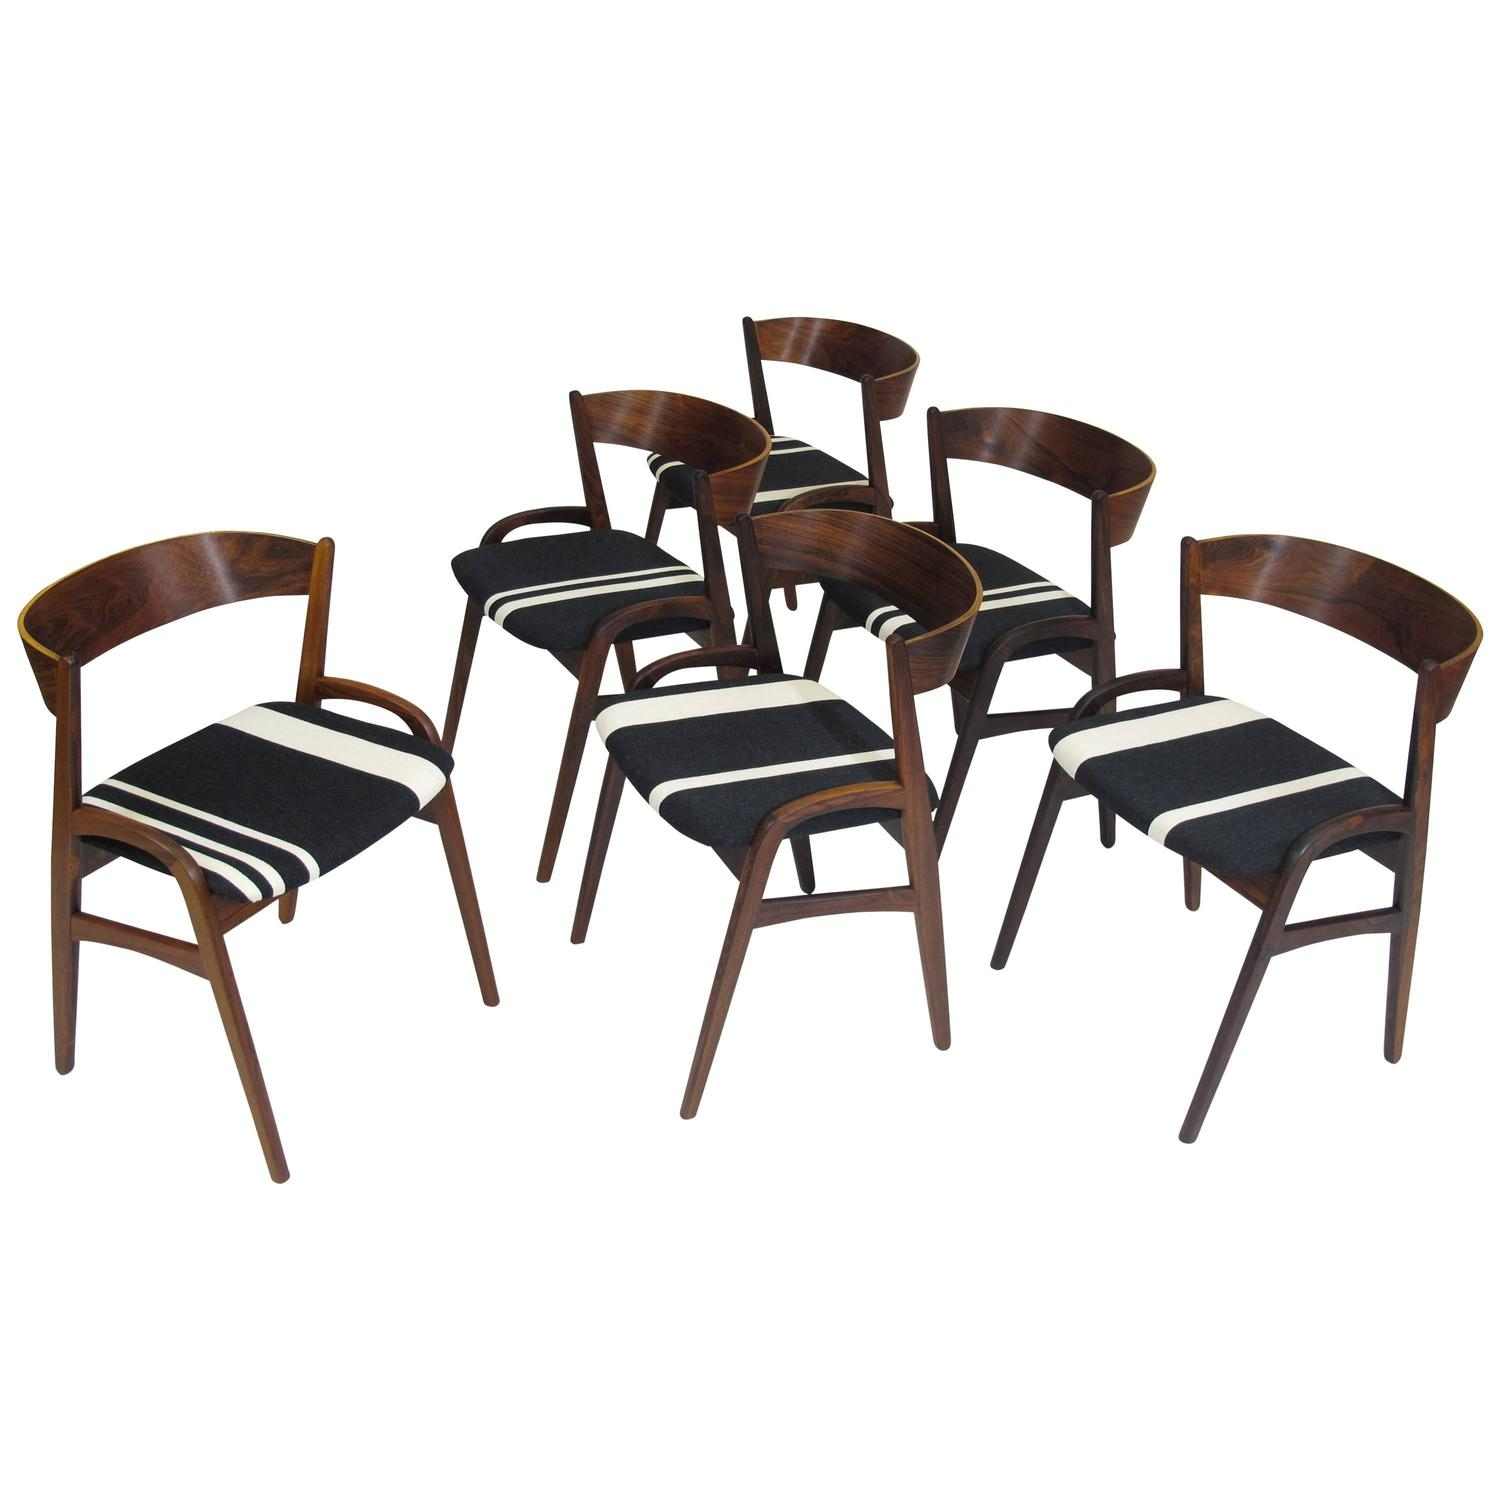 Black And White Striped Chair Six Rosewood Danish Dining Chairs In Black White Striped